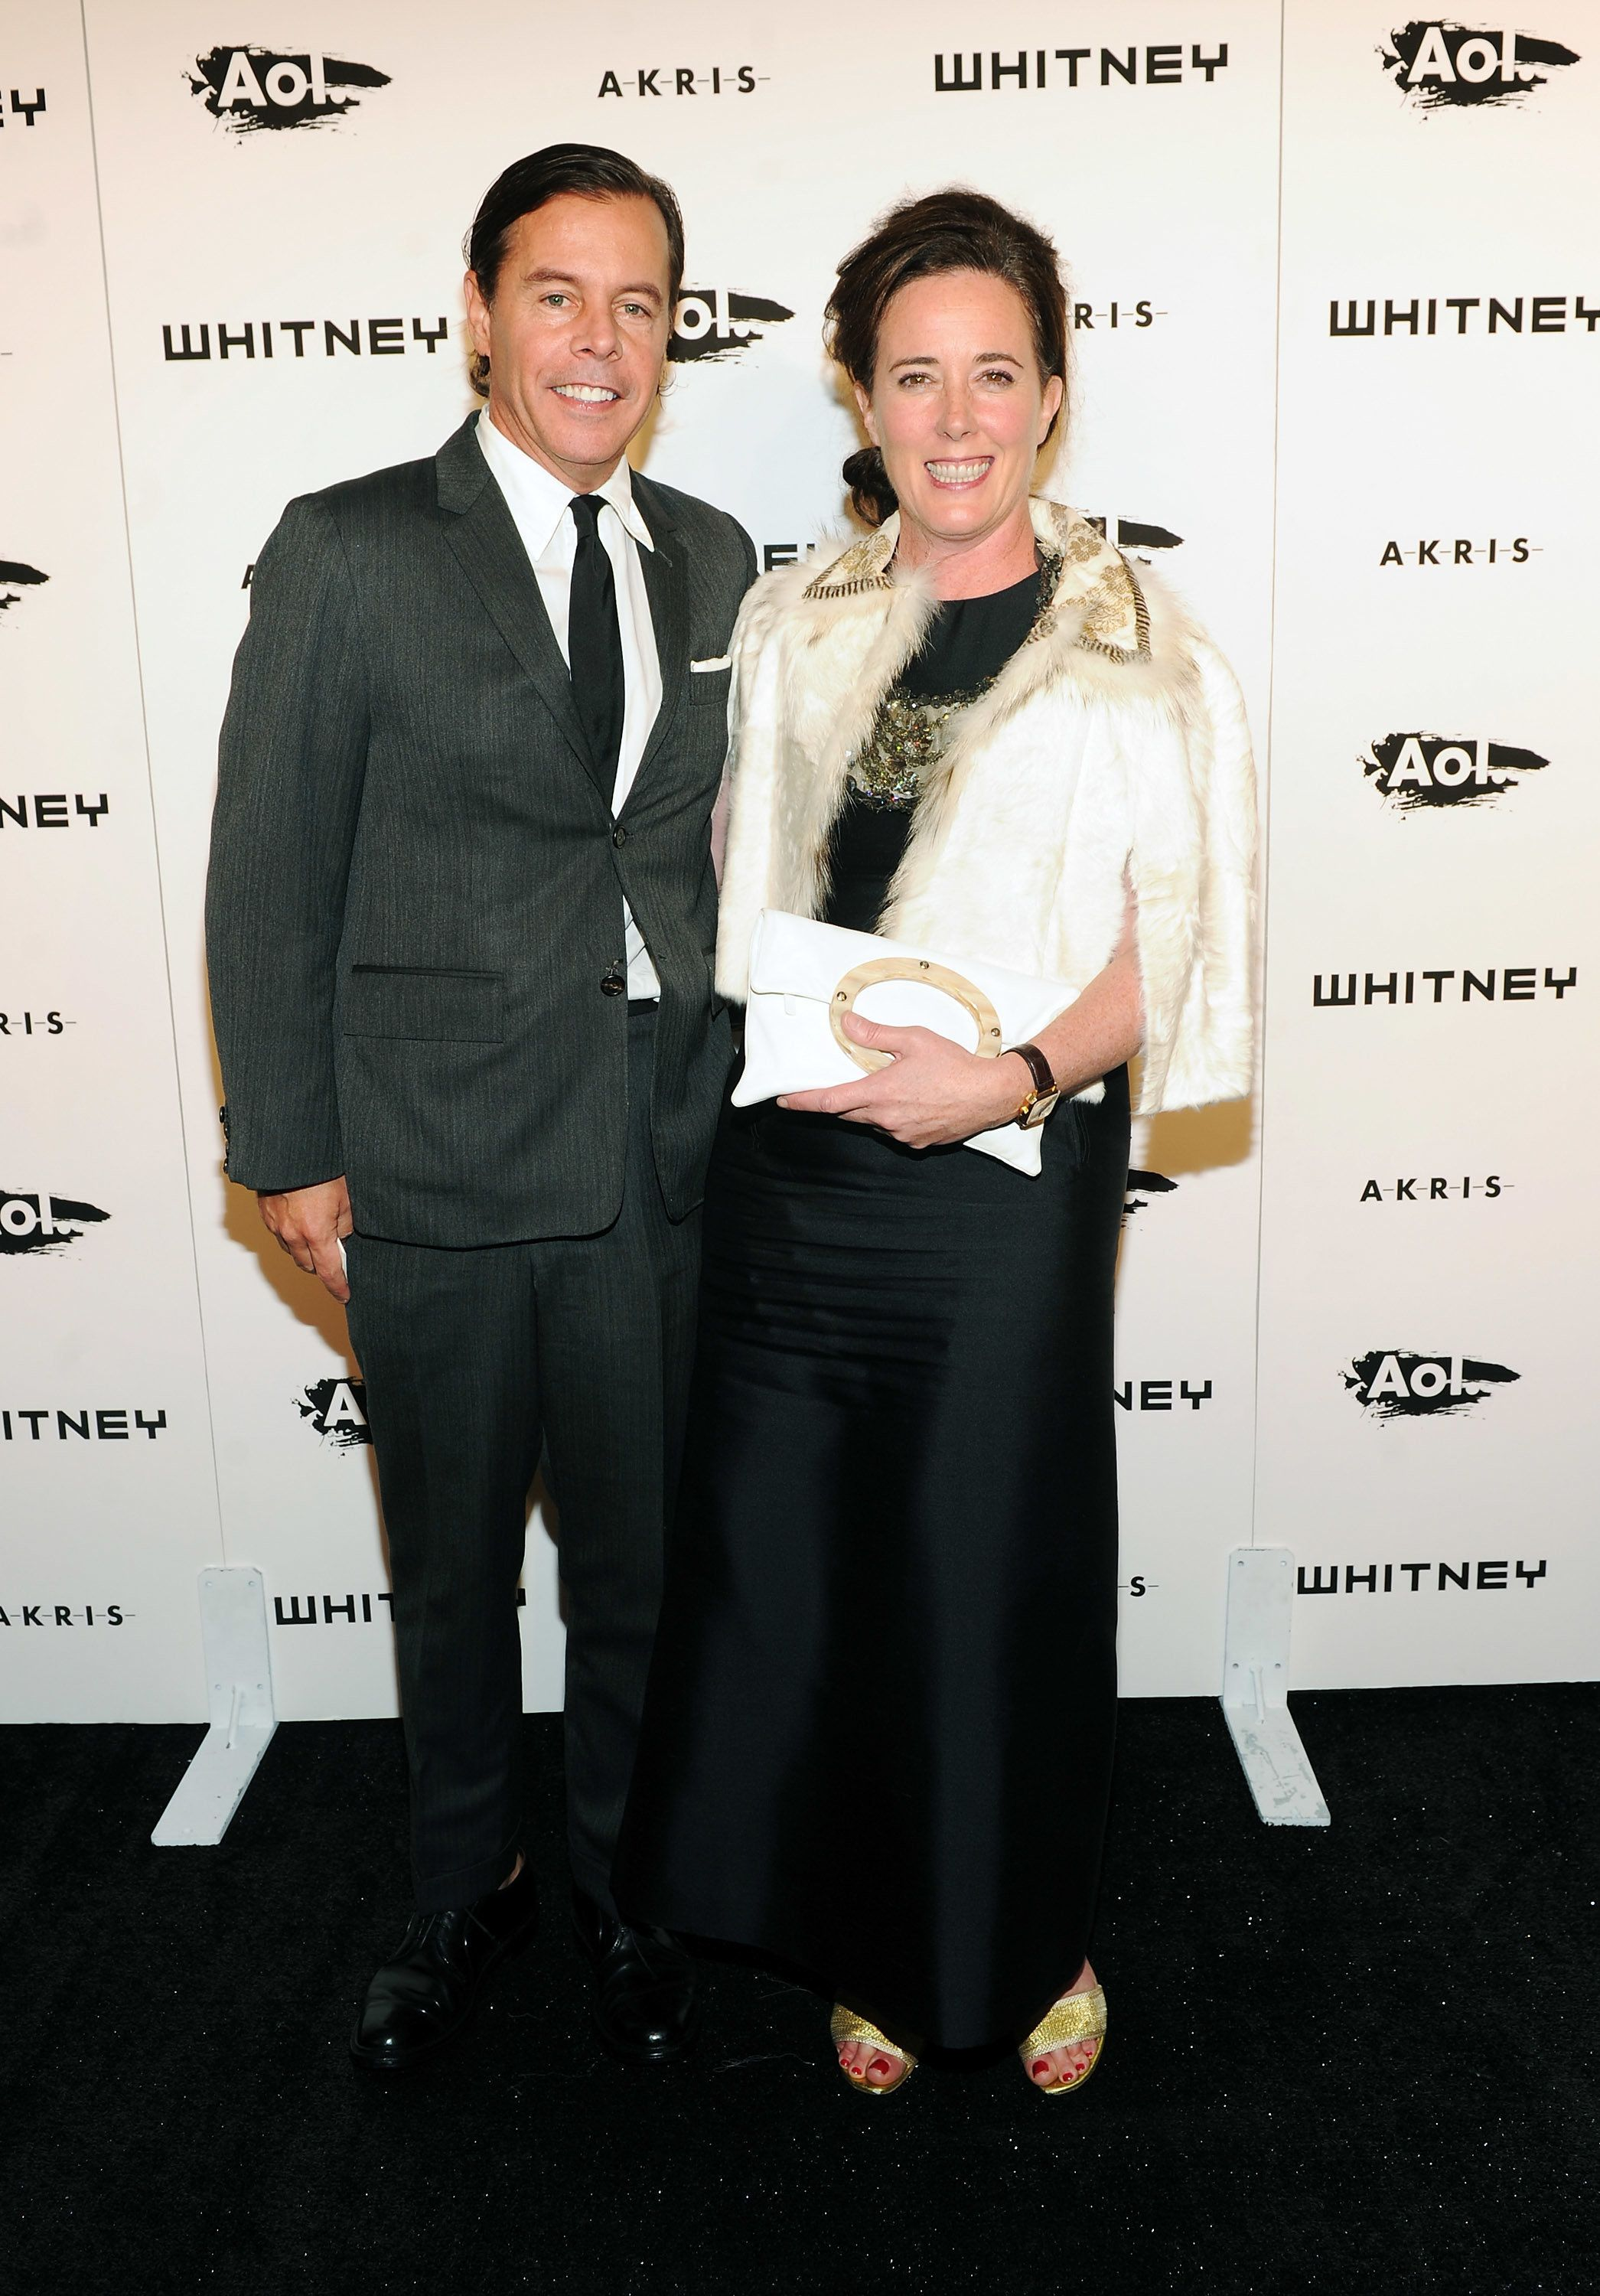 NEW YORK - OCTOBER 26:  Designers Andy Spade and Kate Spade attend the 2010 Whitney Gala and Studio Party at The Whitney Museum of American Art on October 26, 2010 in New York City.  (Photo by Stephen Lovekin/Getty Images)